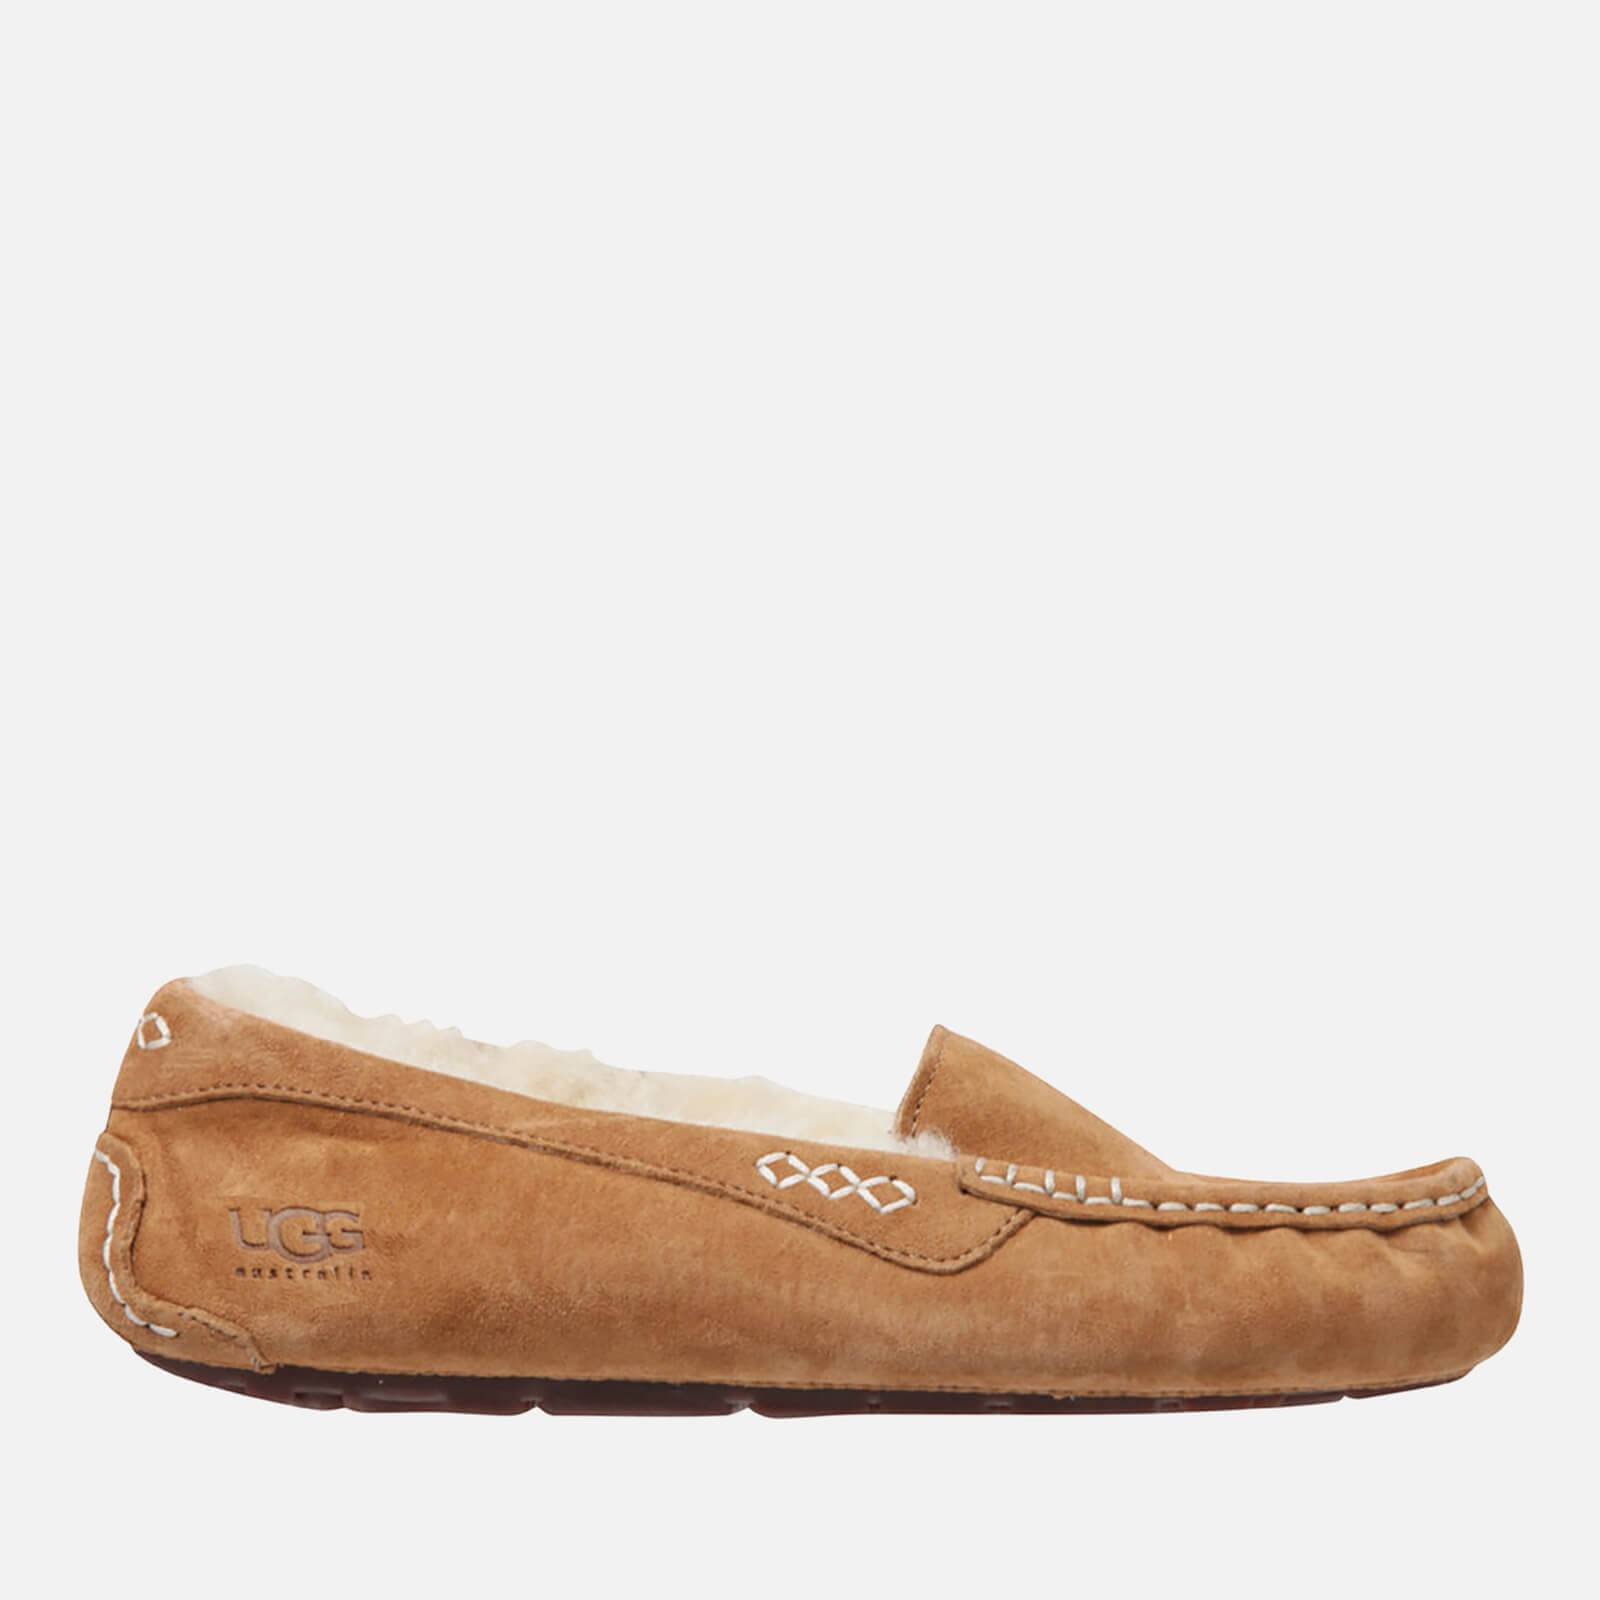 UGG Women's Ansley Moccasin Suede Slippers - Chestnut - UK 4